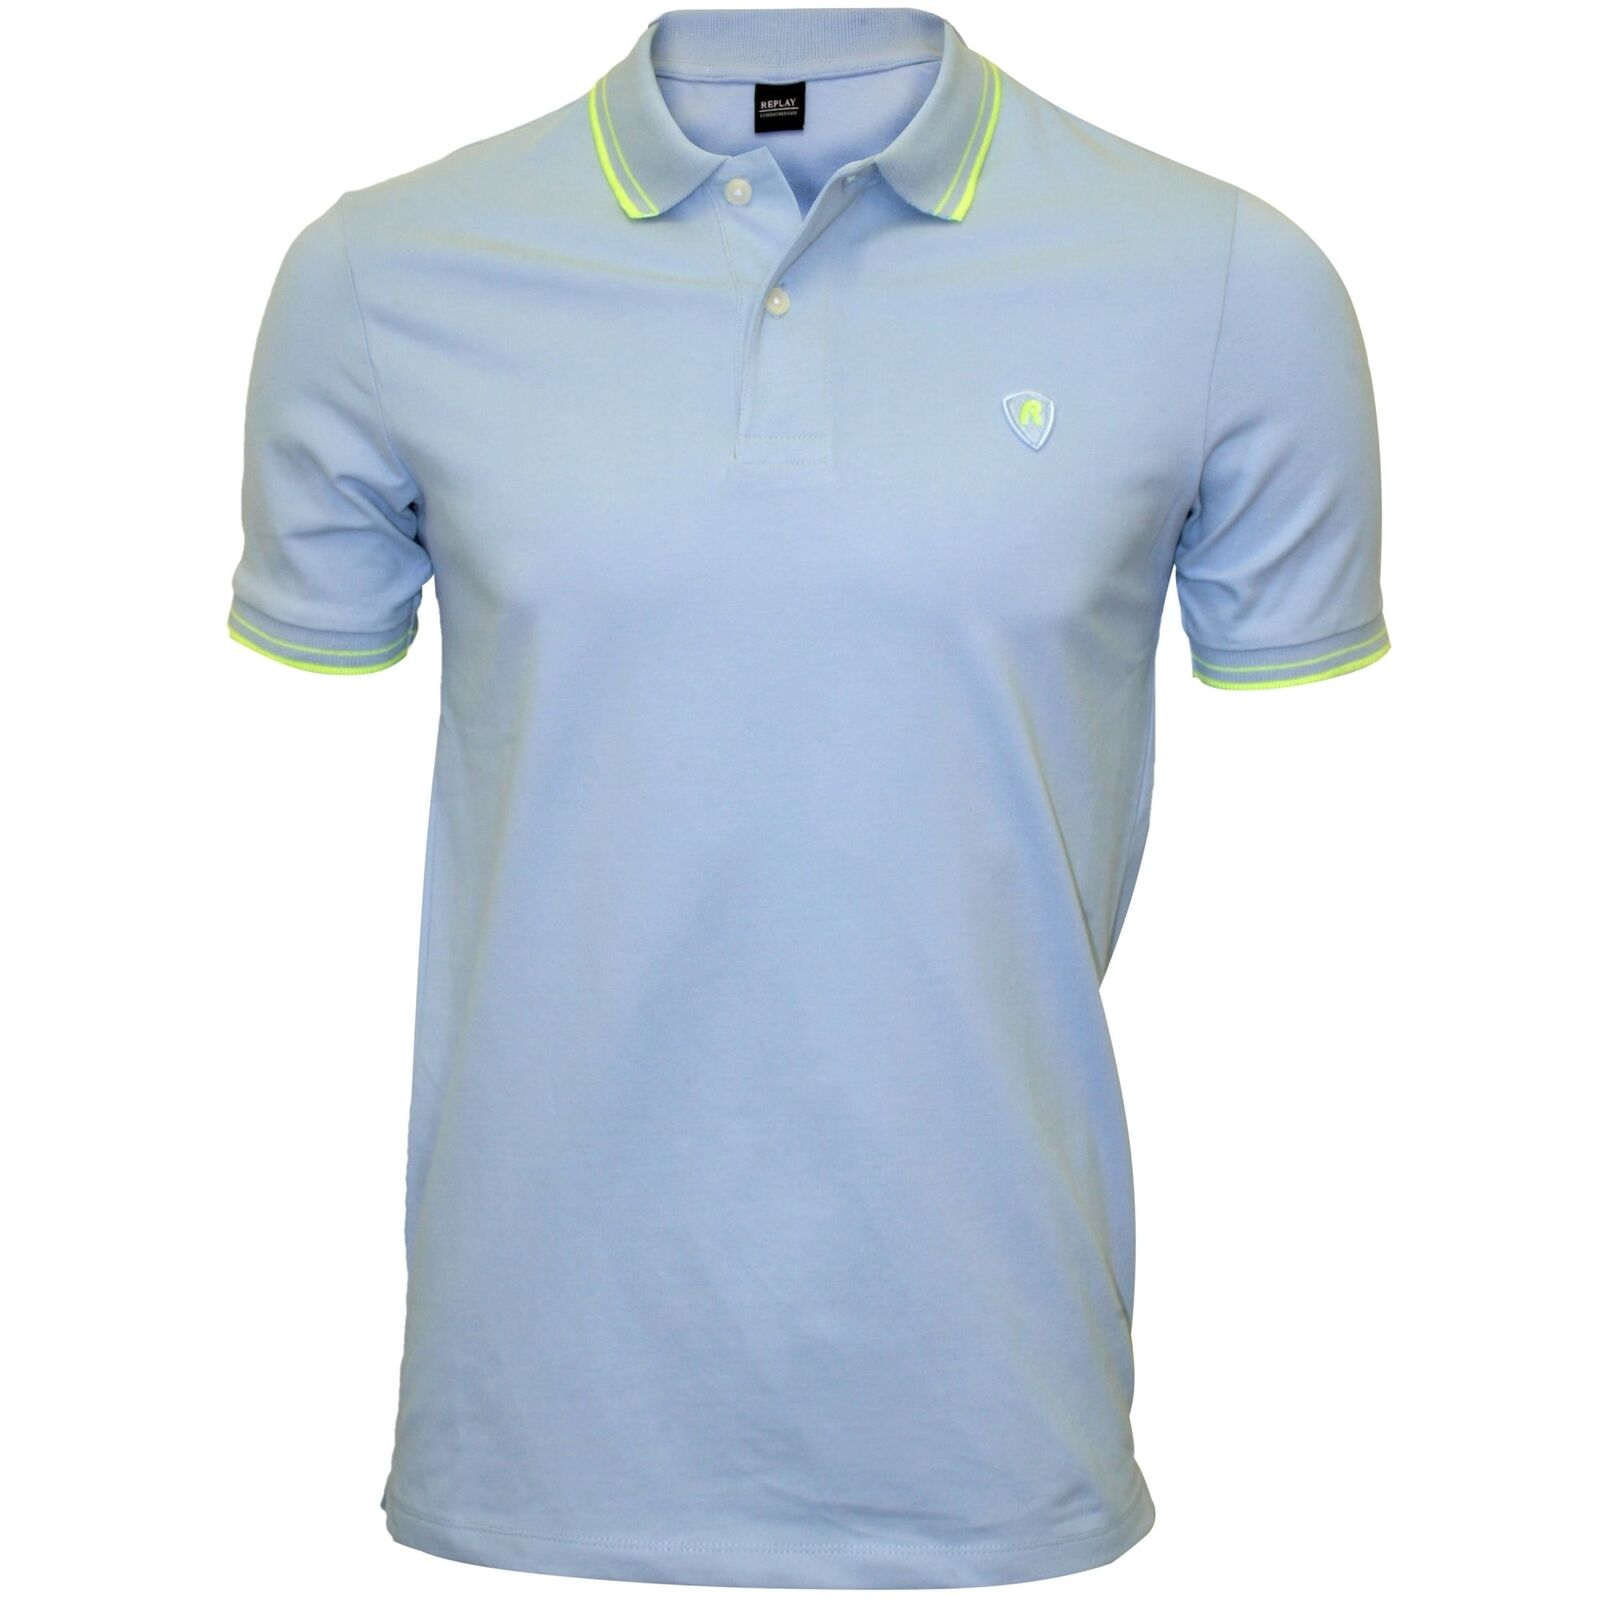 Replay Colour Contrast Men's Polo Shirt, Light Azure